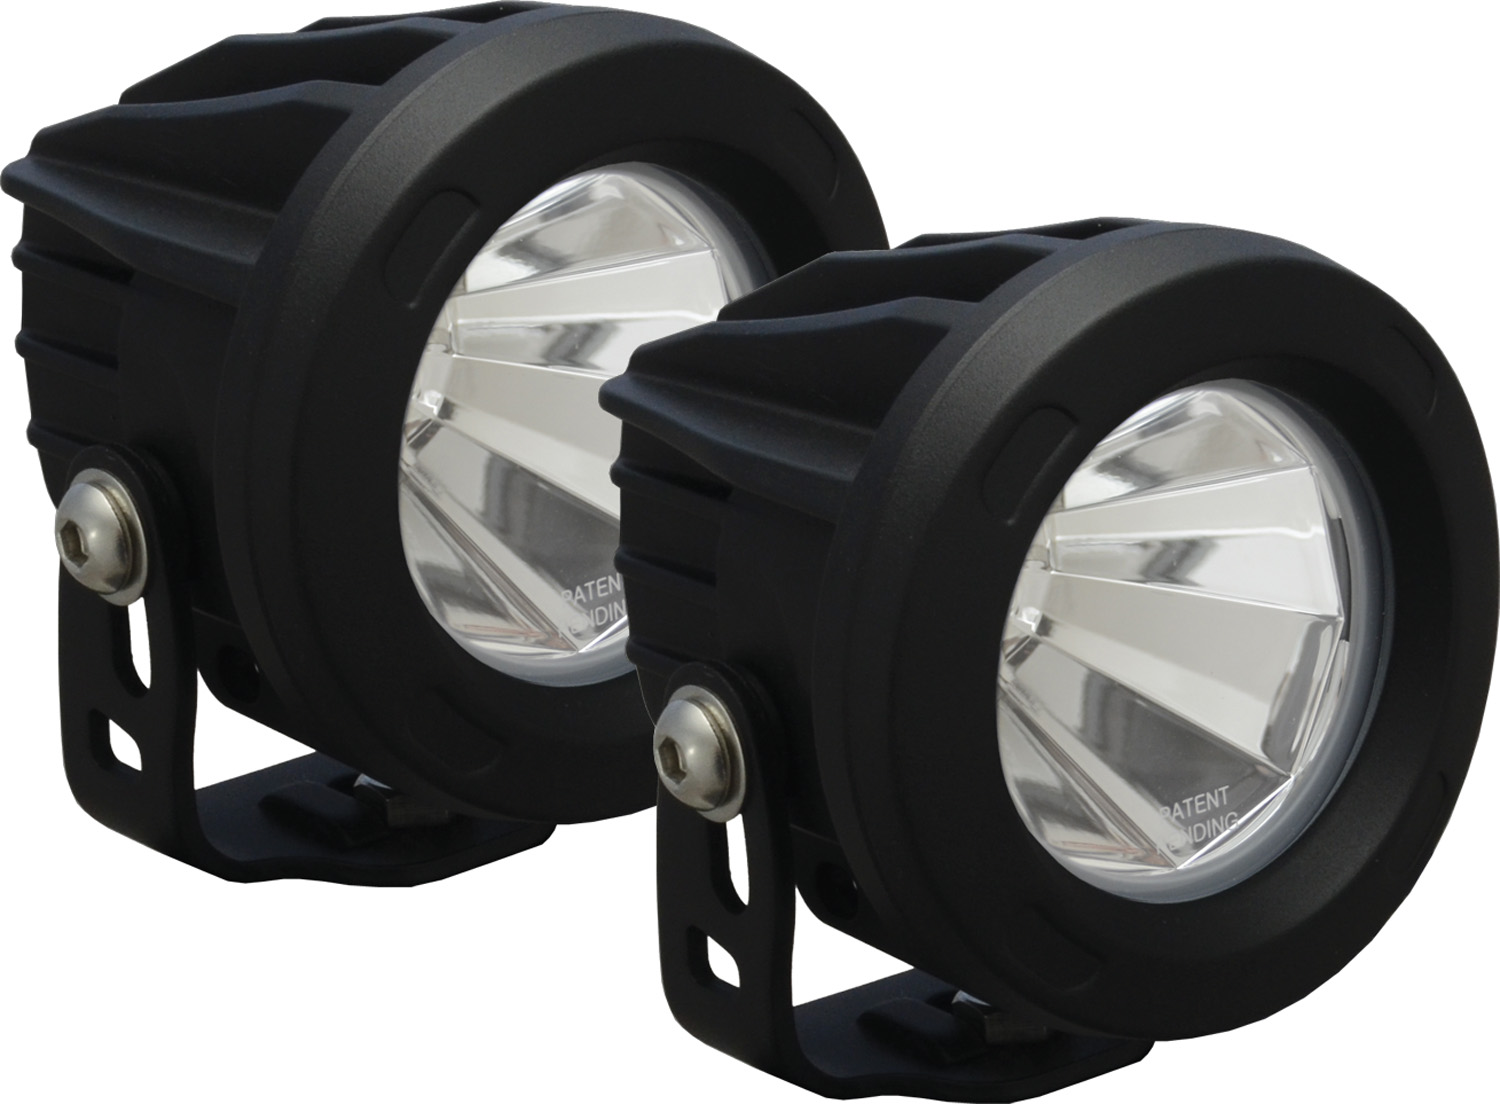 OPTIMUS ROUND BLACK 1 10W LED 60ç FLOOD KIT OF 2 LIGHTS